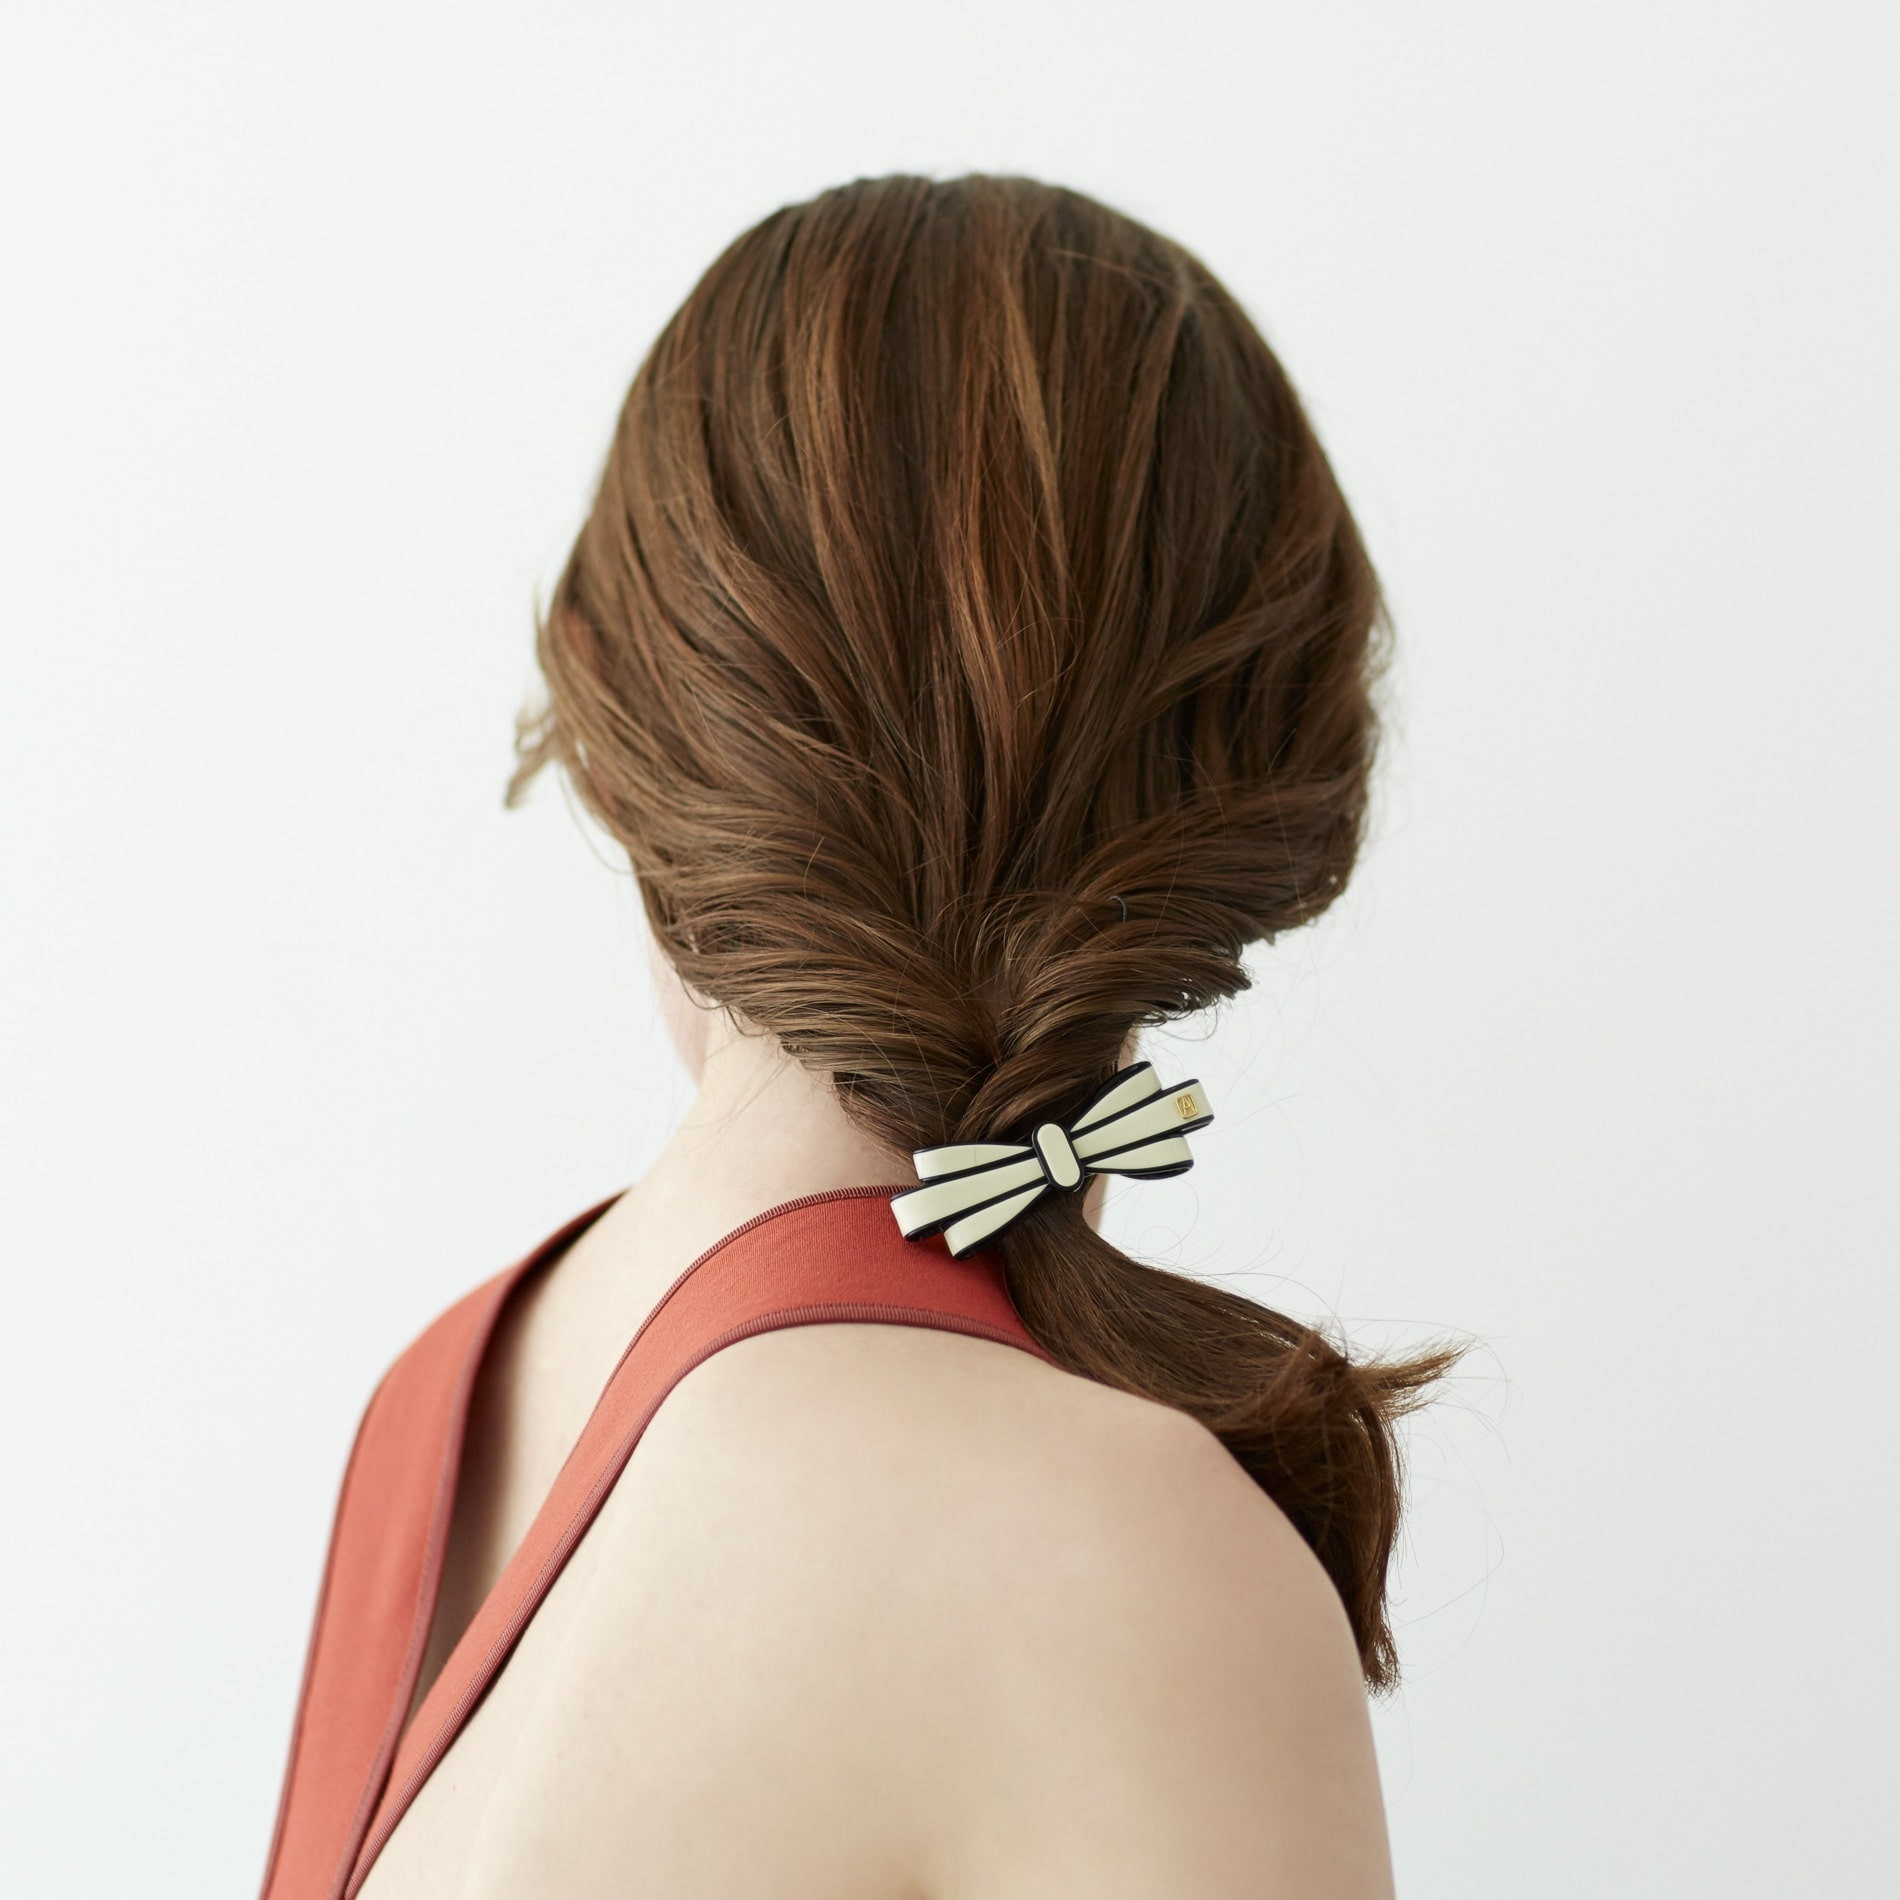 BARRETTE (6cm) / TENUE DE SOIREE 詳細画像 ベージュ(X) 3